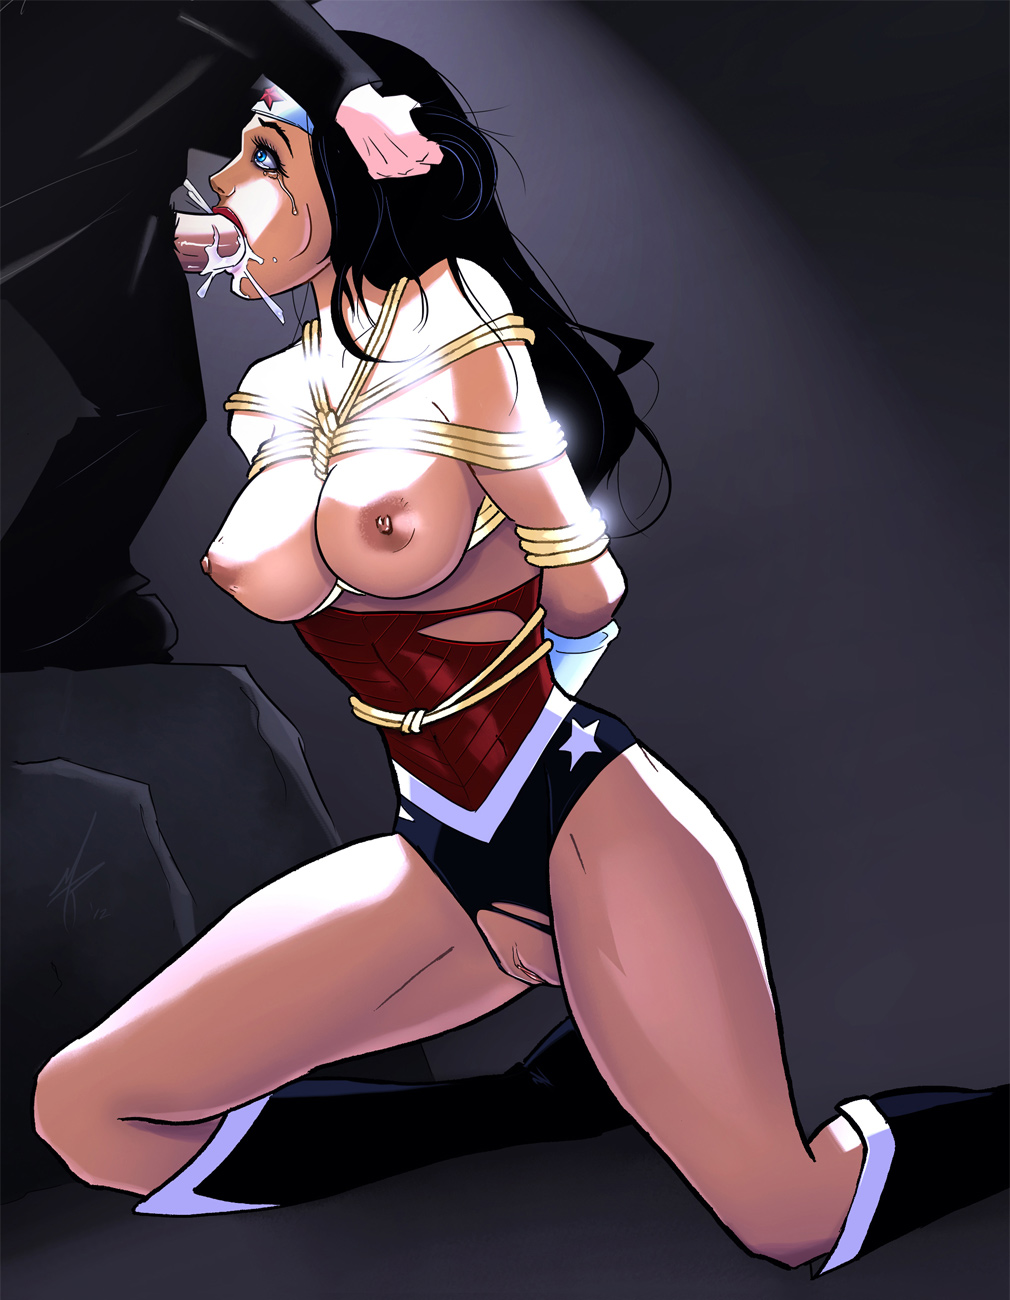 Photo anime hot moratl picsbat sex pornos video